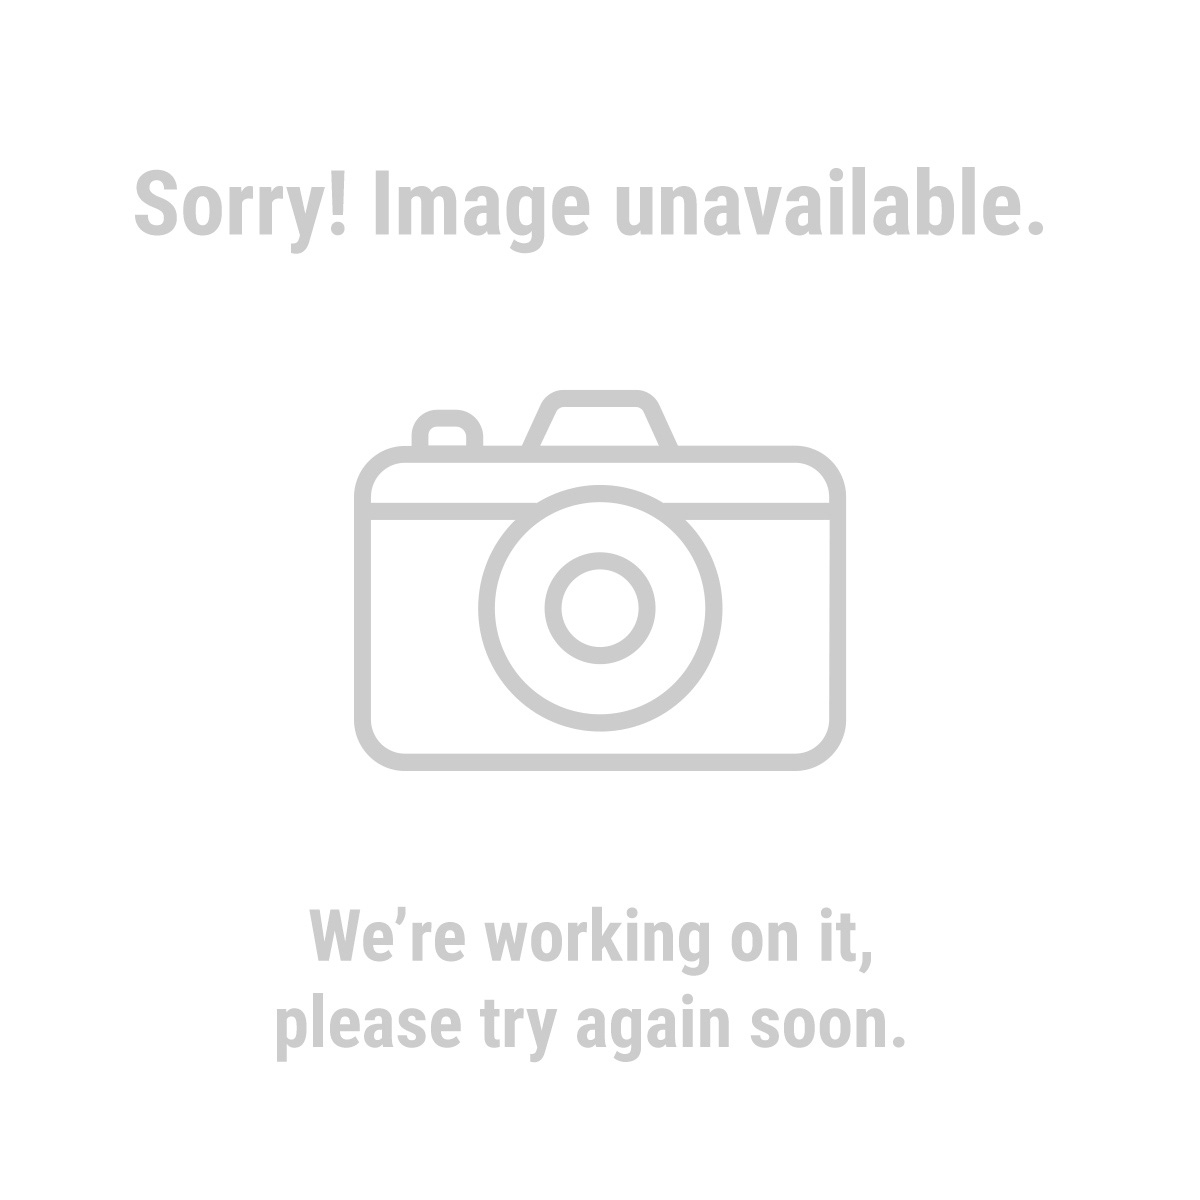 Chicago Electric Welding 45690 240 Volt Spot Welder